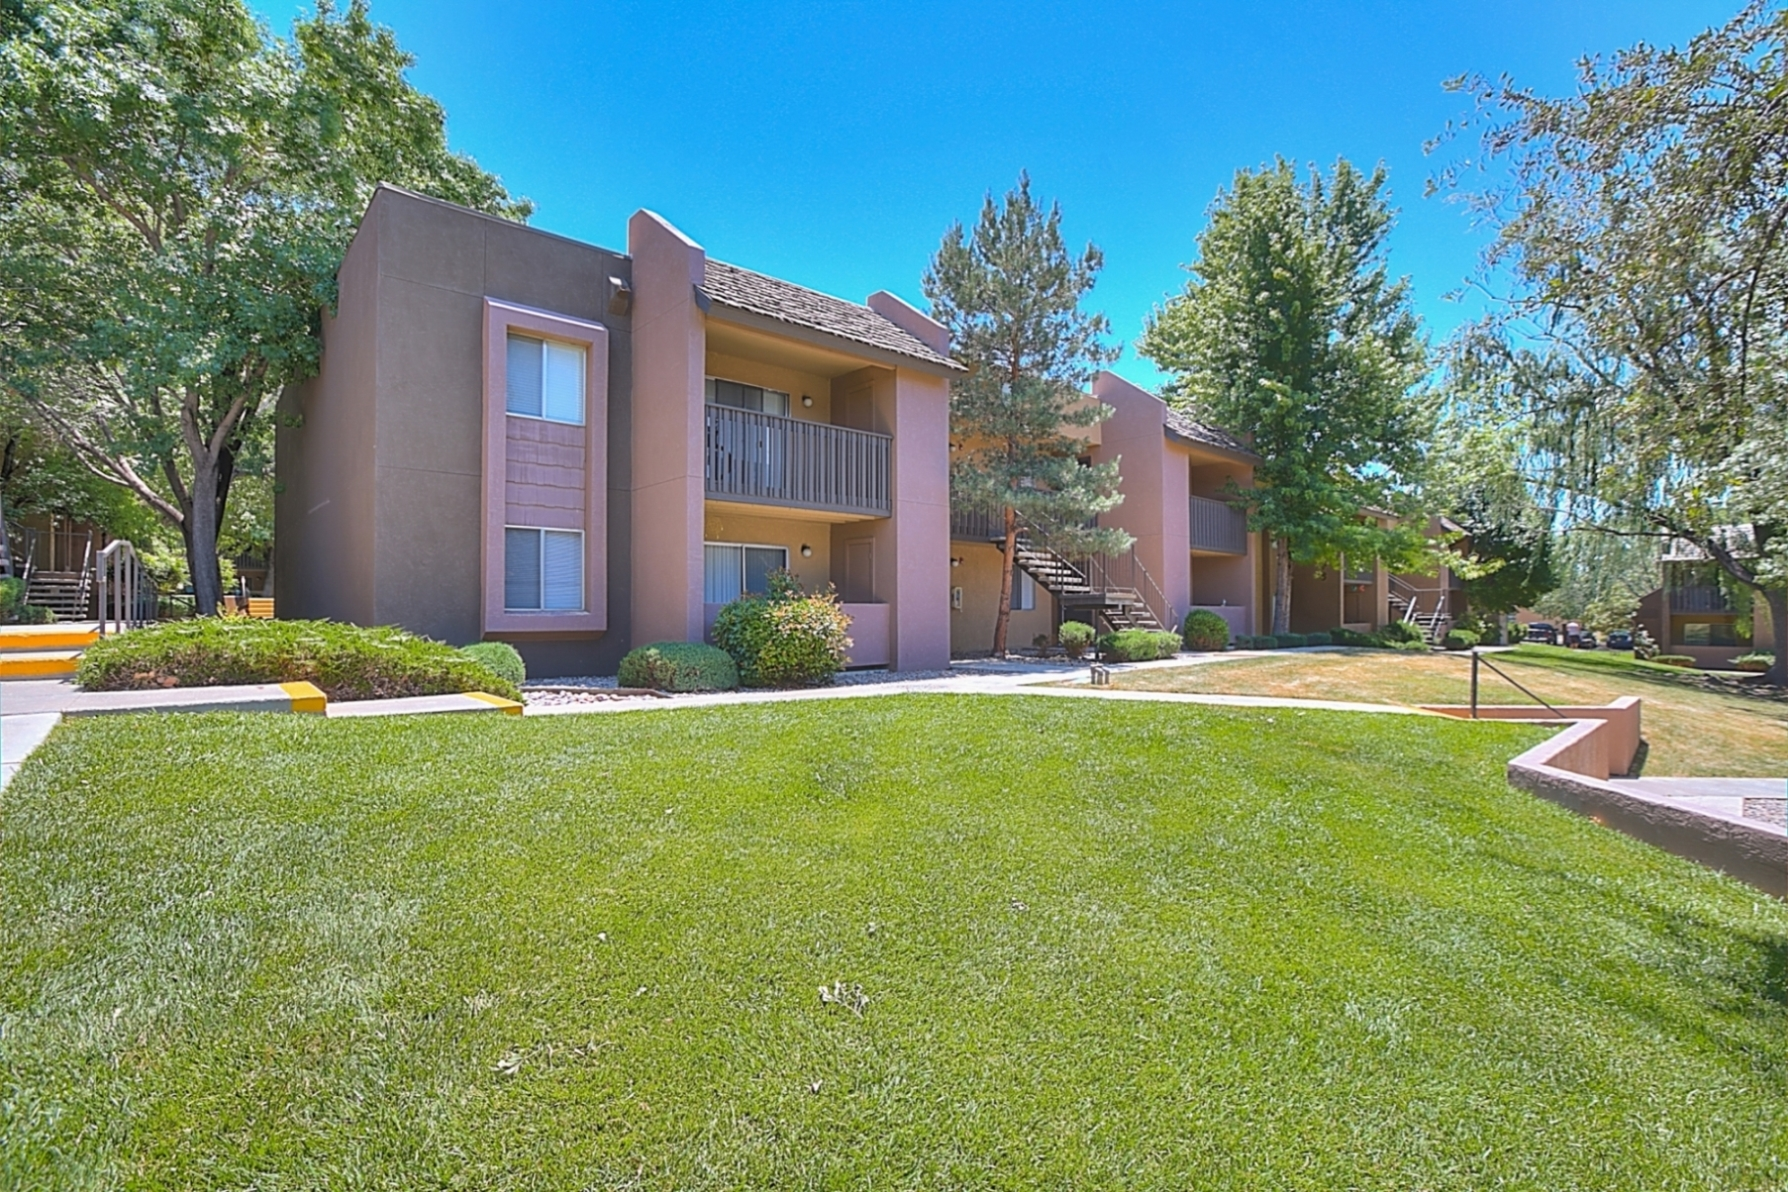 Beautifully Landscaped Grounds at Eagle Pointe Apartments, NM, 87111